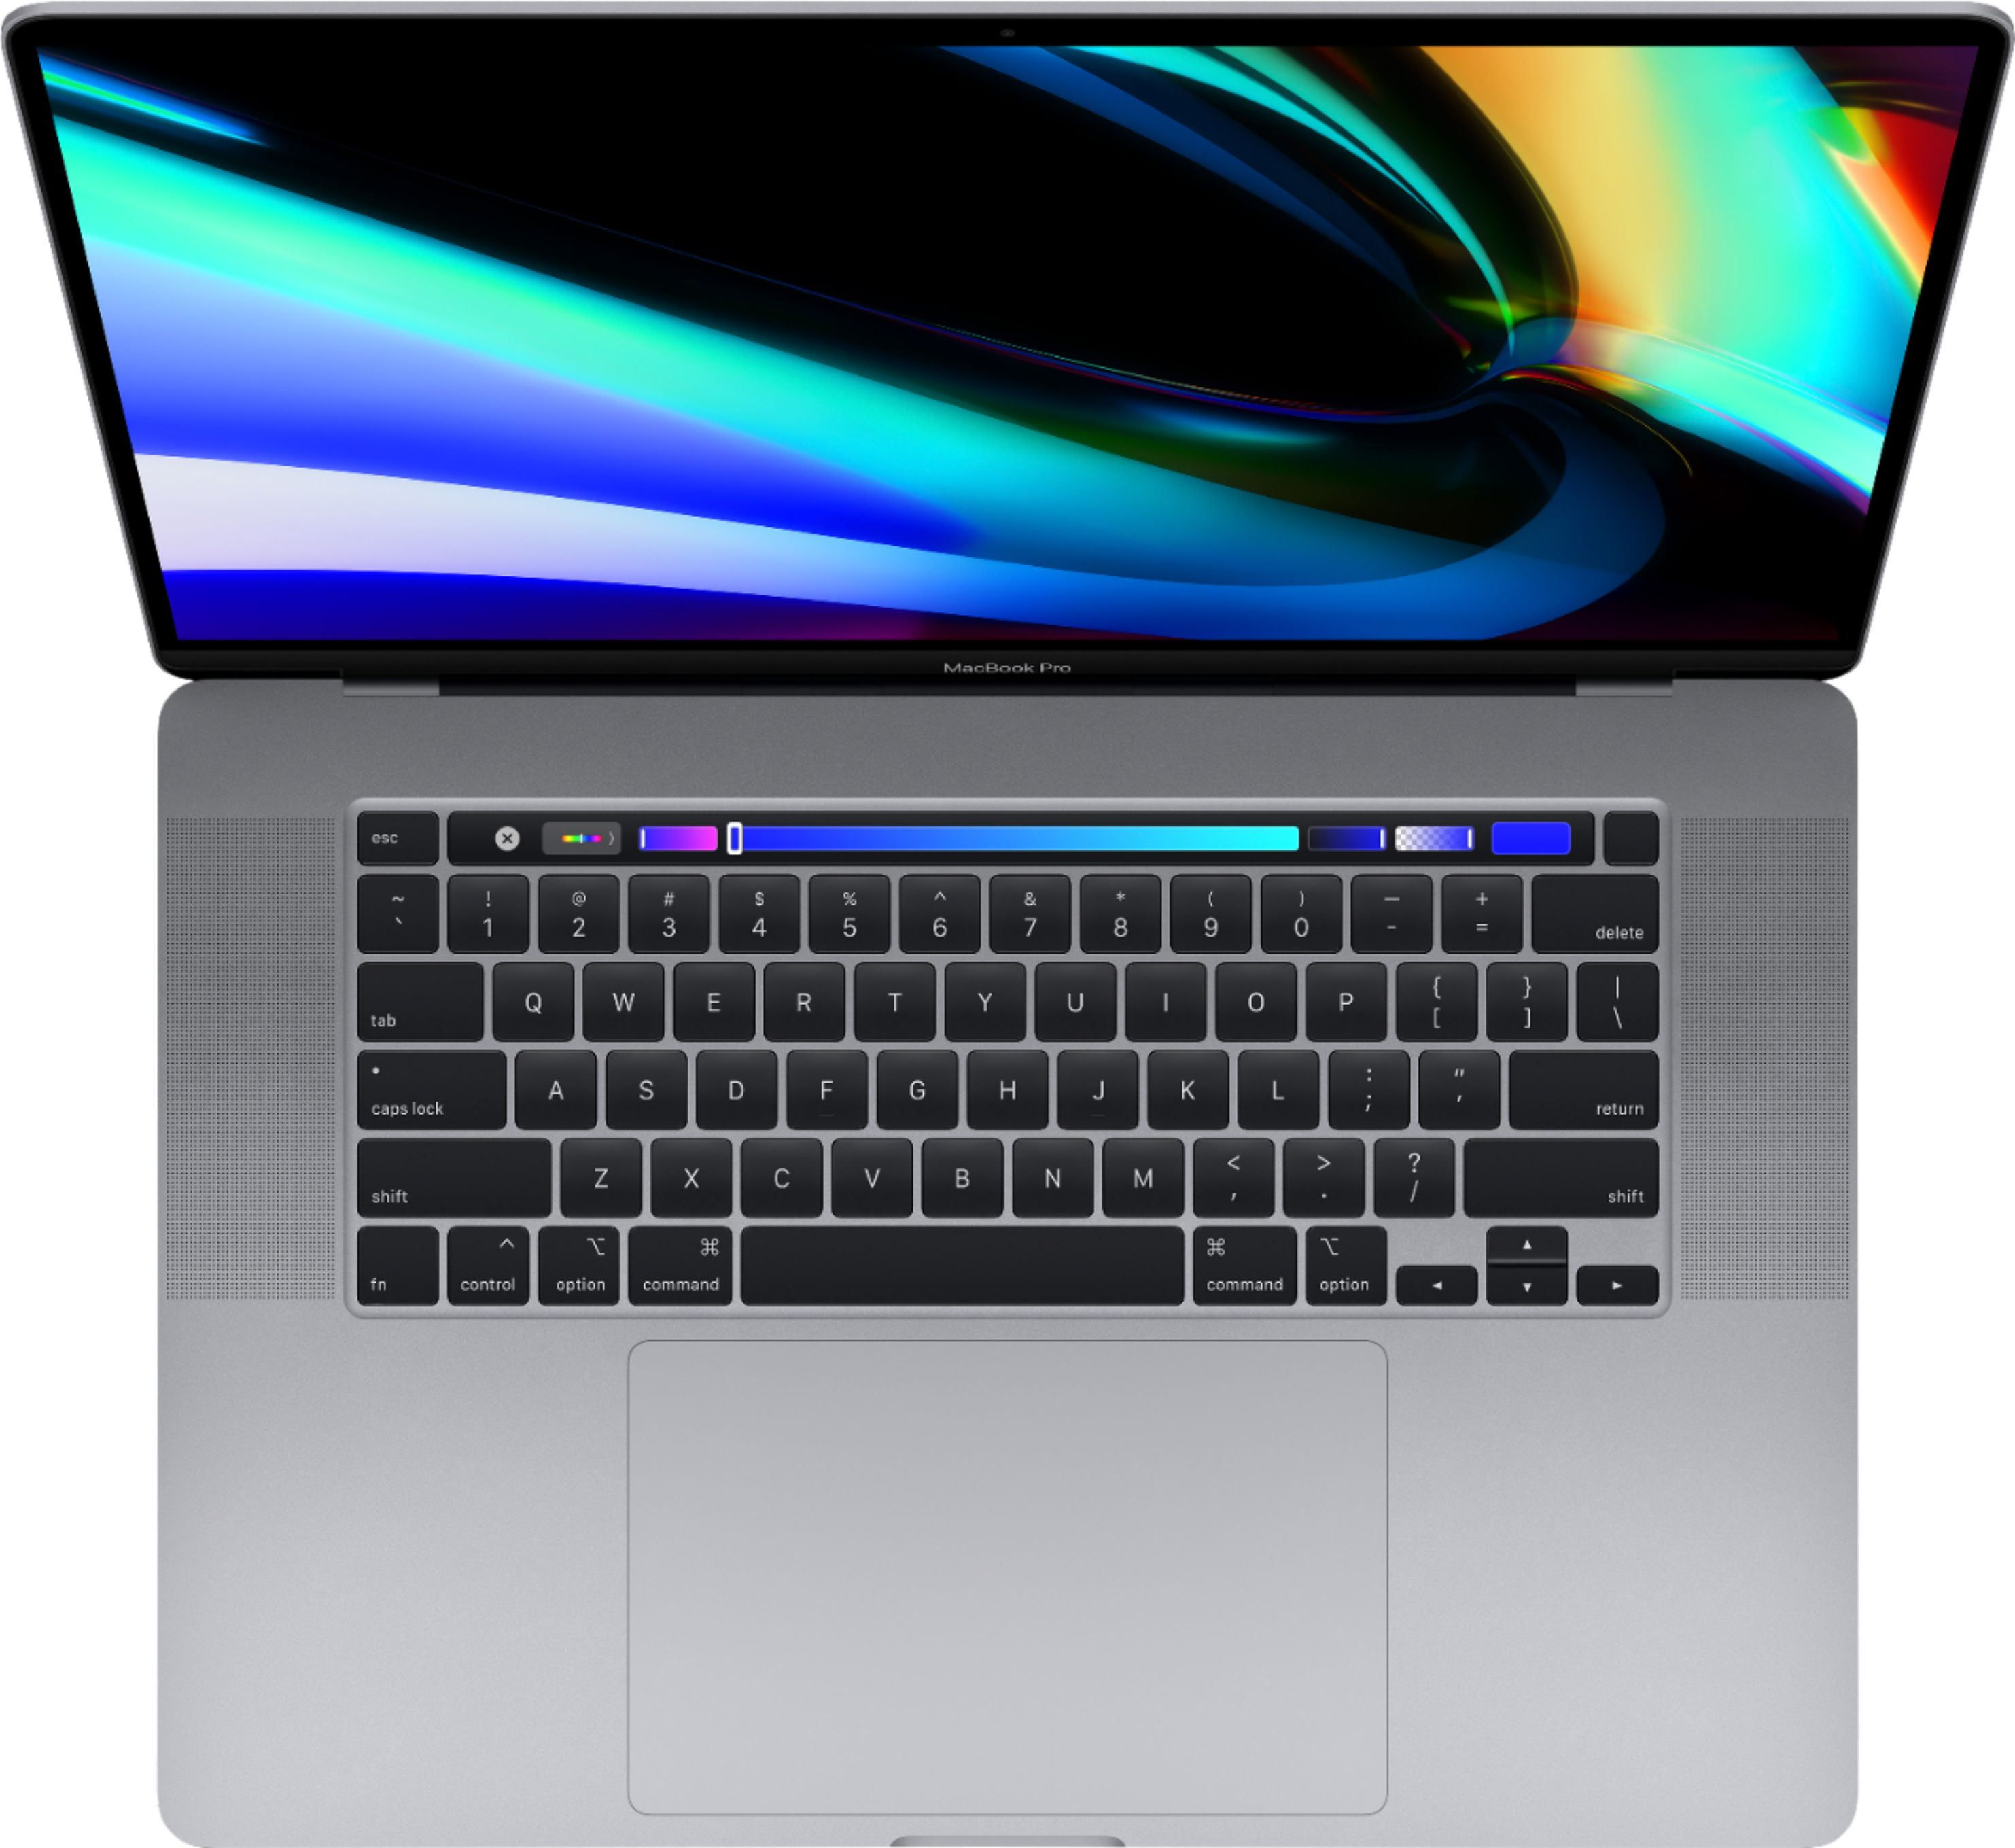 """Alt View Zoom 11. Apple - MacBook Pro - 16"""" Display with Touch Bar - Intel Core i7 - 16GB Memory - AMD Radeon Pro 5300M - 512GB SSD (Latest Model) - Space Gray."""